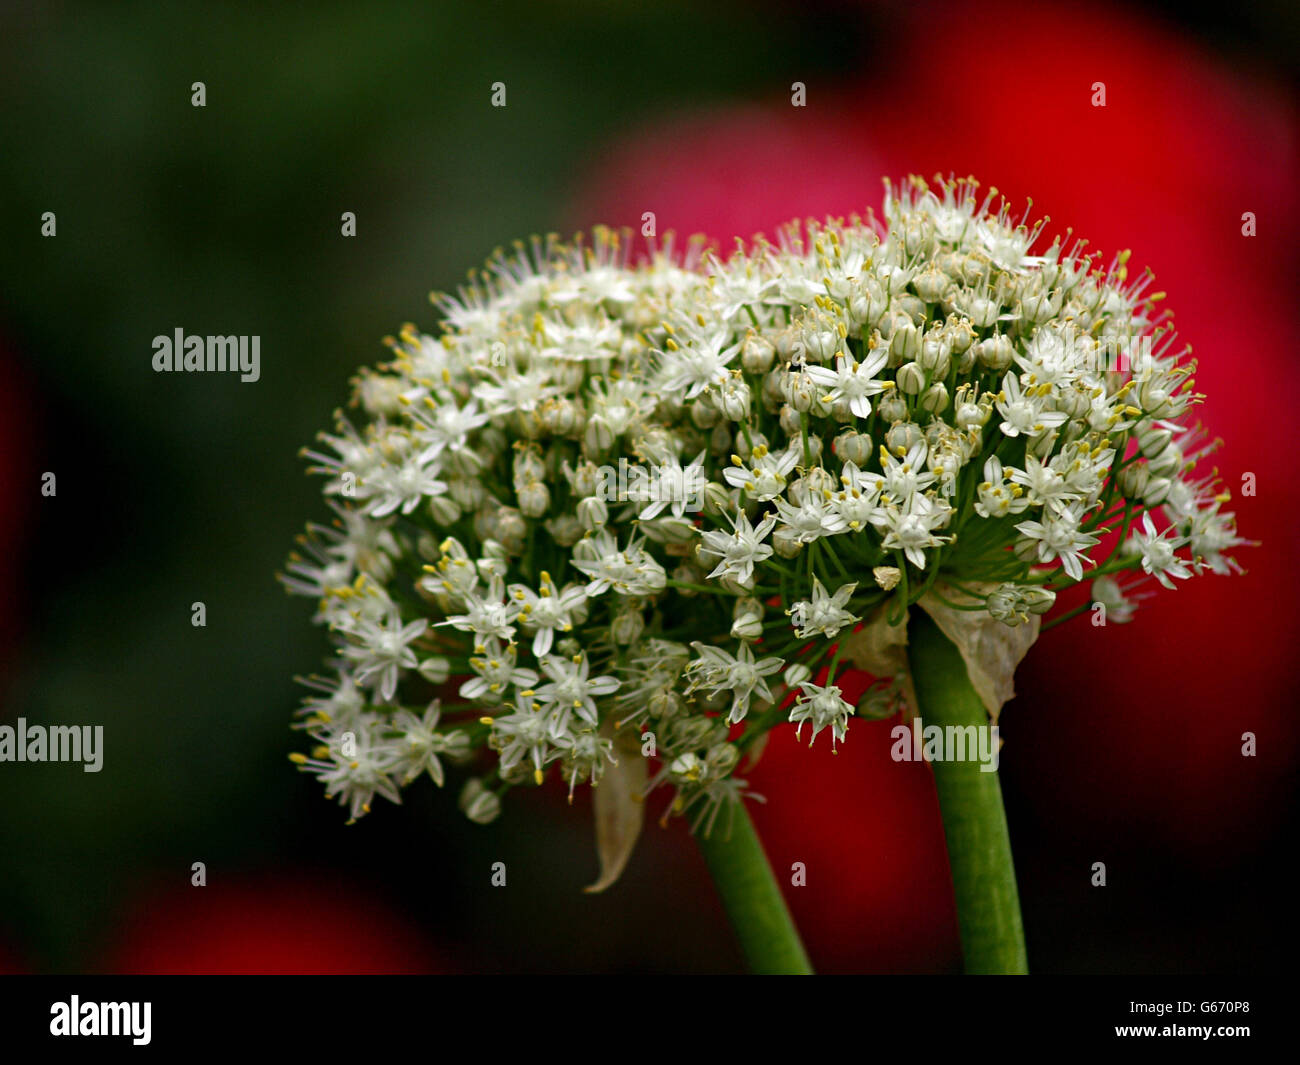 spheres of onions flowers  on red background, elegante and unusual - Stock Image